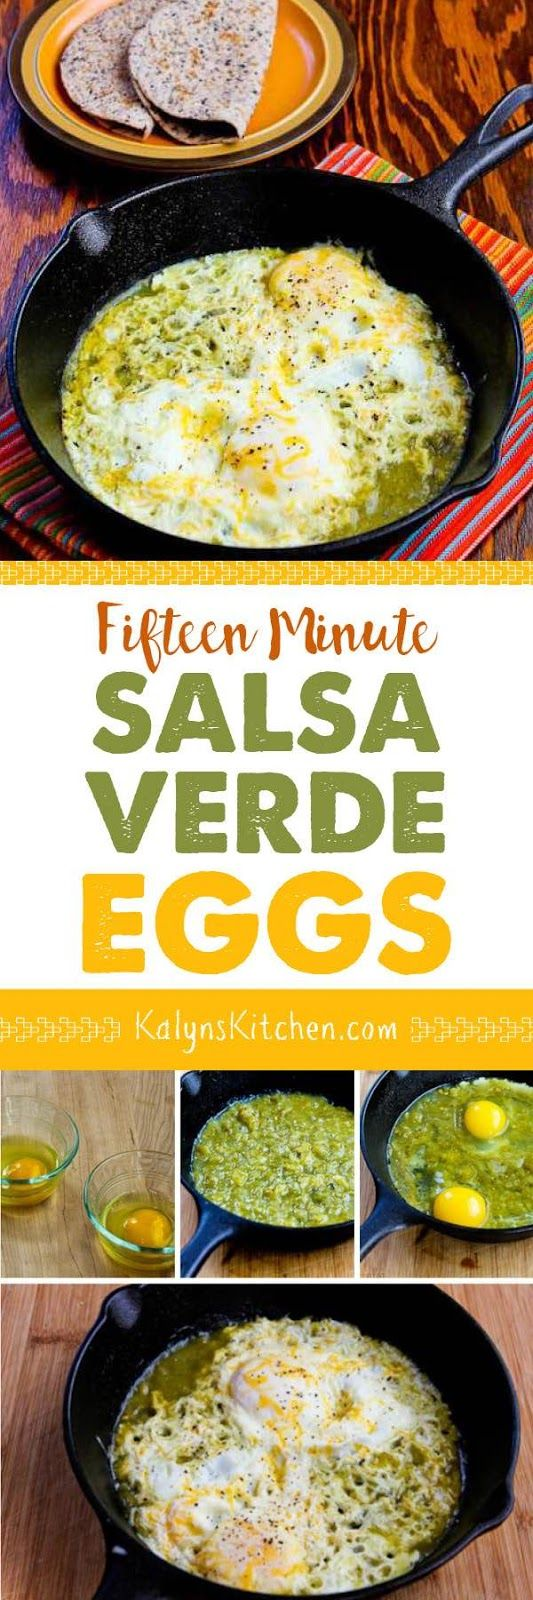 Fifteen Minute Salsa Verde Eggs are easy and quick for a delicious 5-Ingredient breakfast. I ate this with low-carb tortillas, but skip the tortillas for lowest-carb and gluten-free version. [found on KalynsKitchen.com]